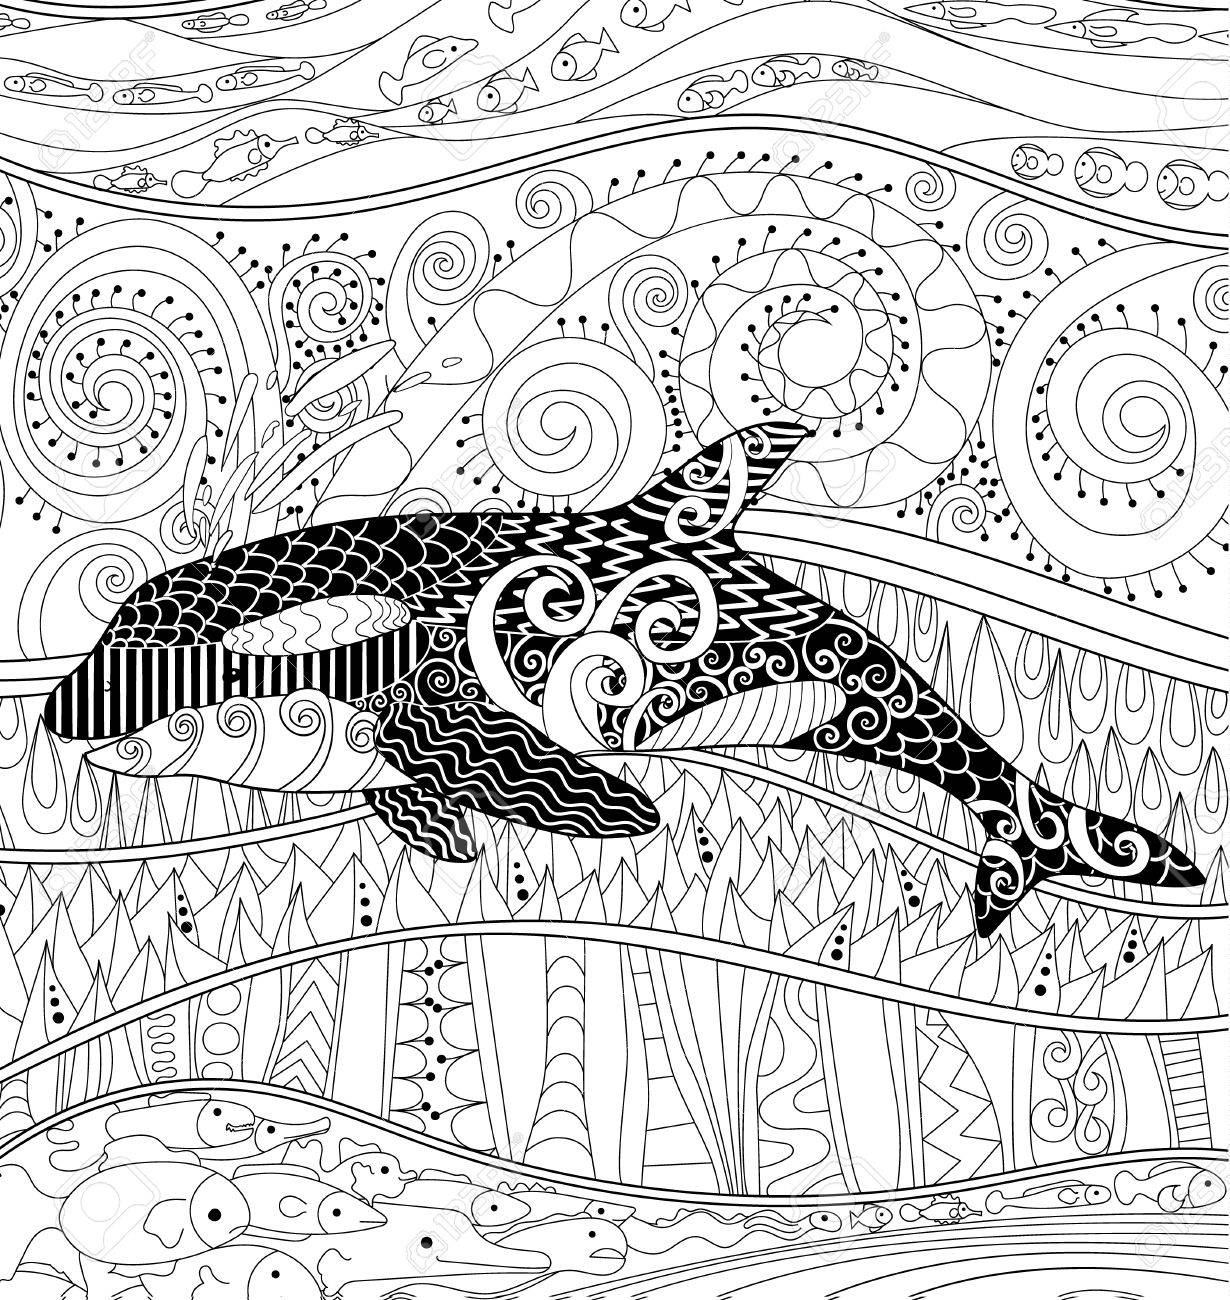 Killer Whale With High Details. Adult Antistress Coloring Page ...